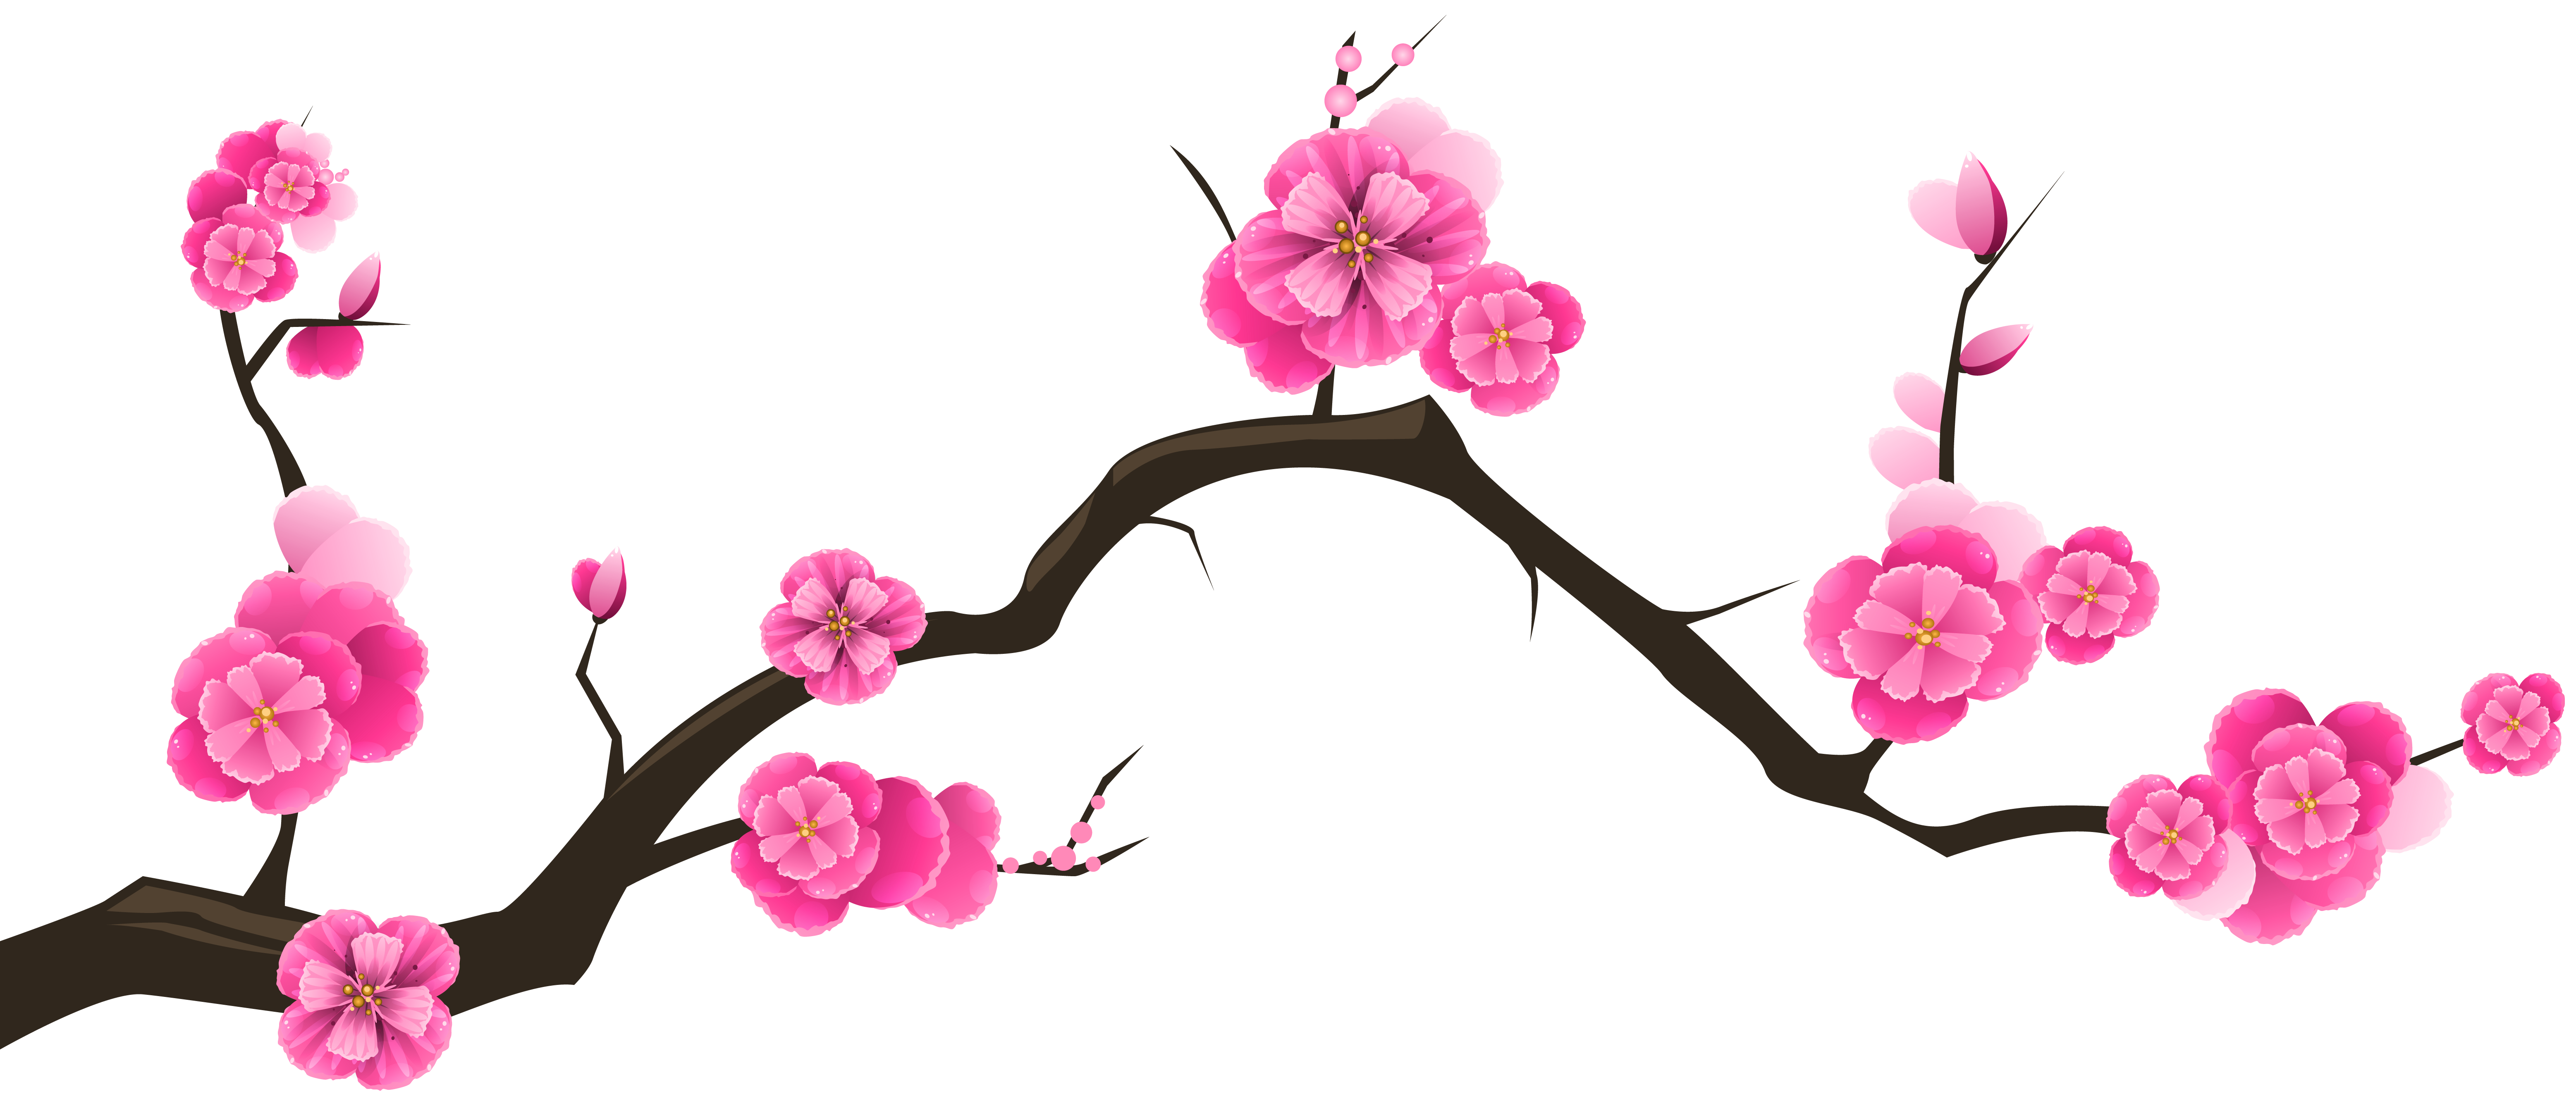 banner transparent stock Orchid flower at getdrawings. Spa flowers clipart